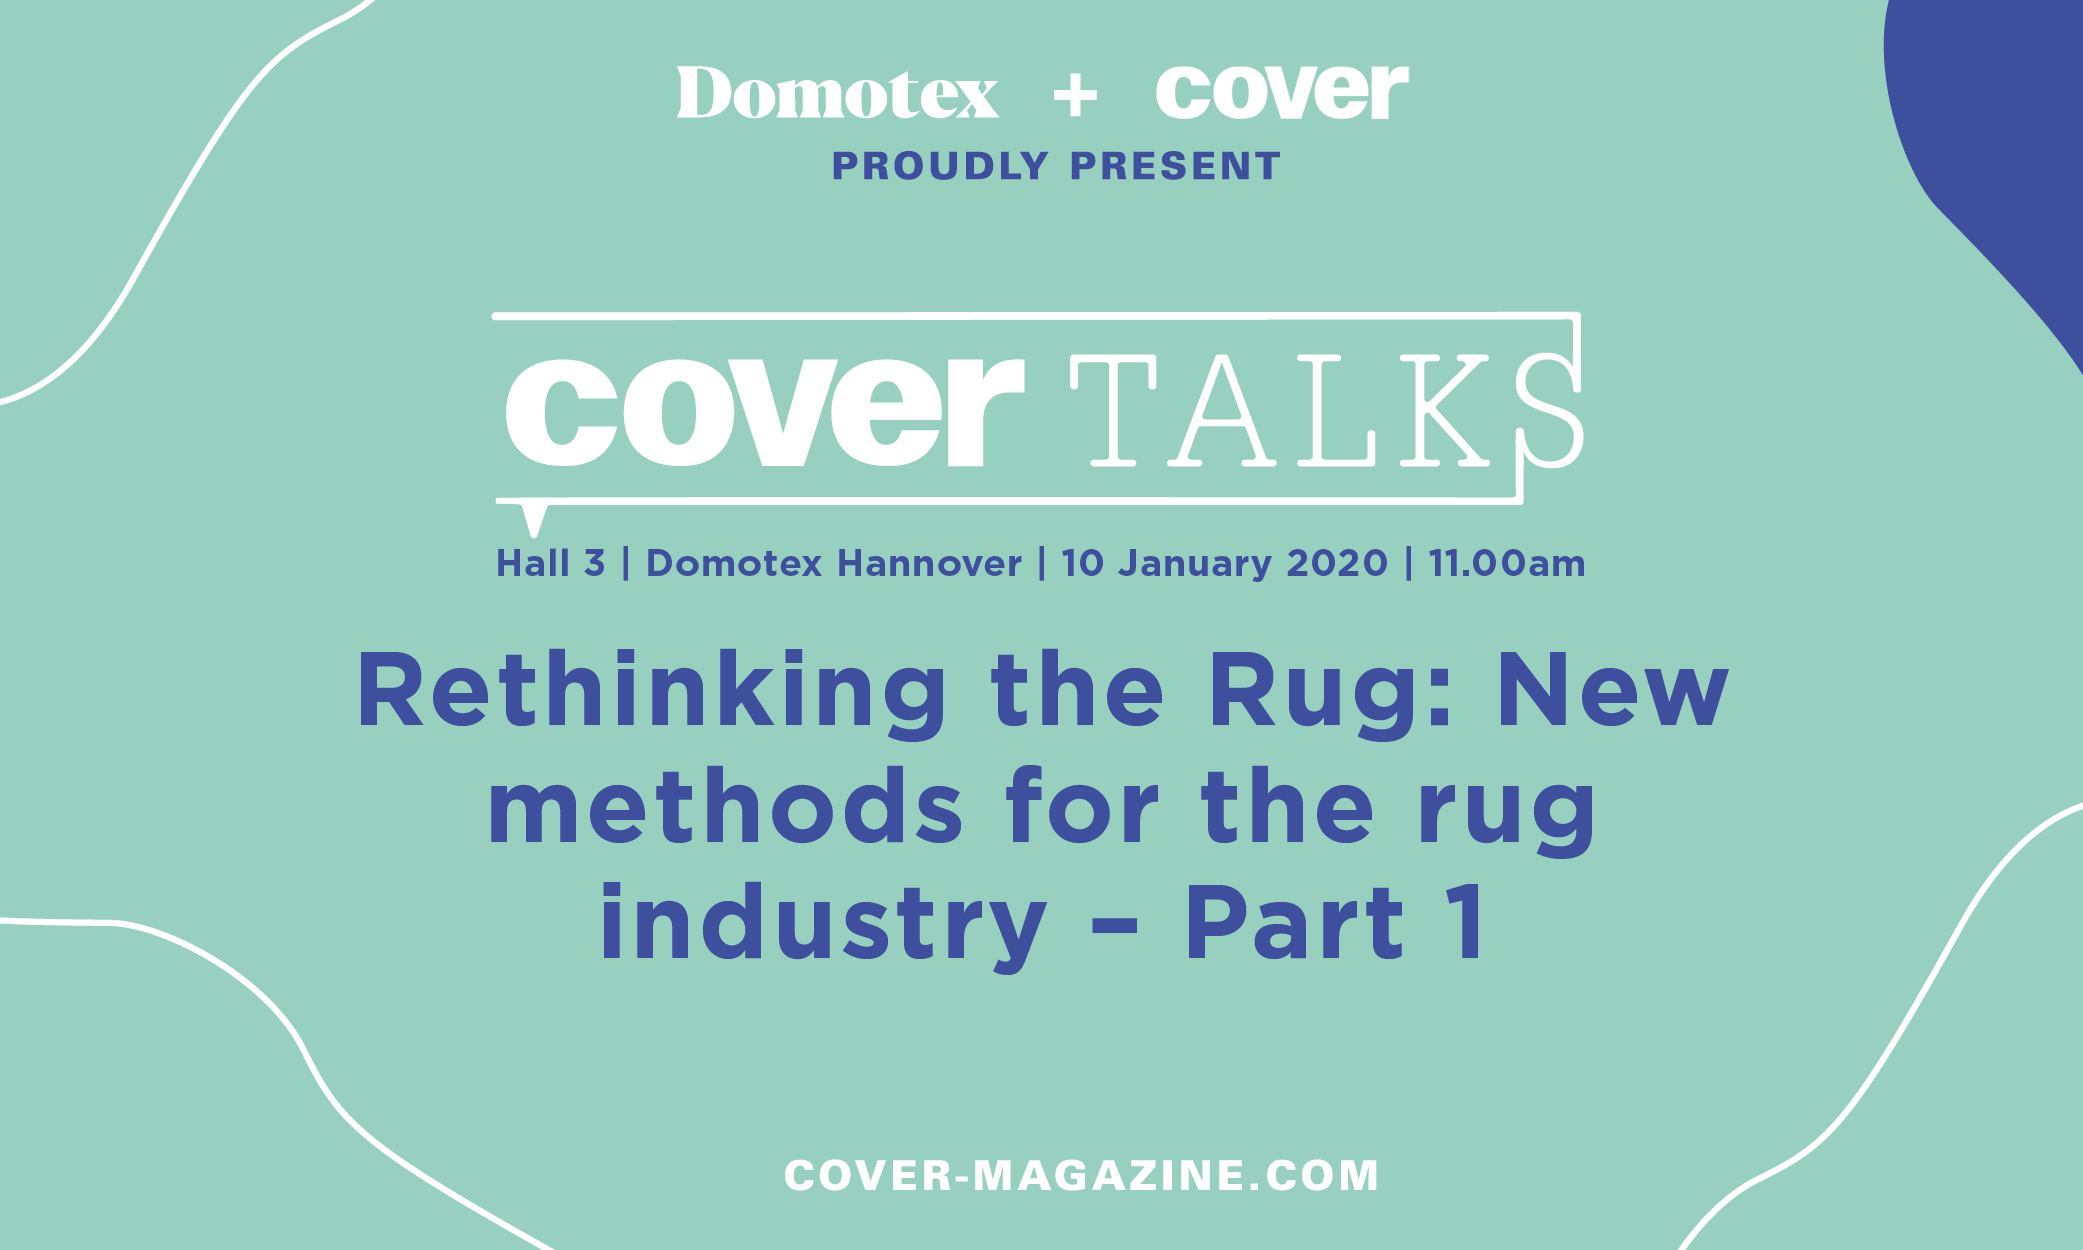 Rethinking the Rug: New methods for the rug industry — Part 1, Friday 10 January, 11.00am